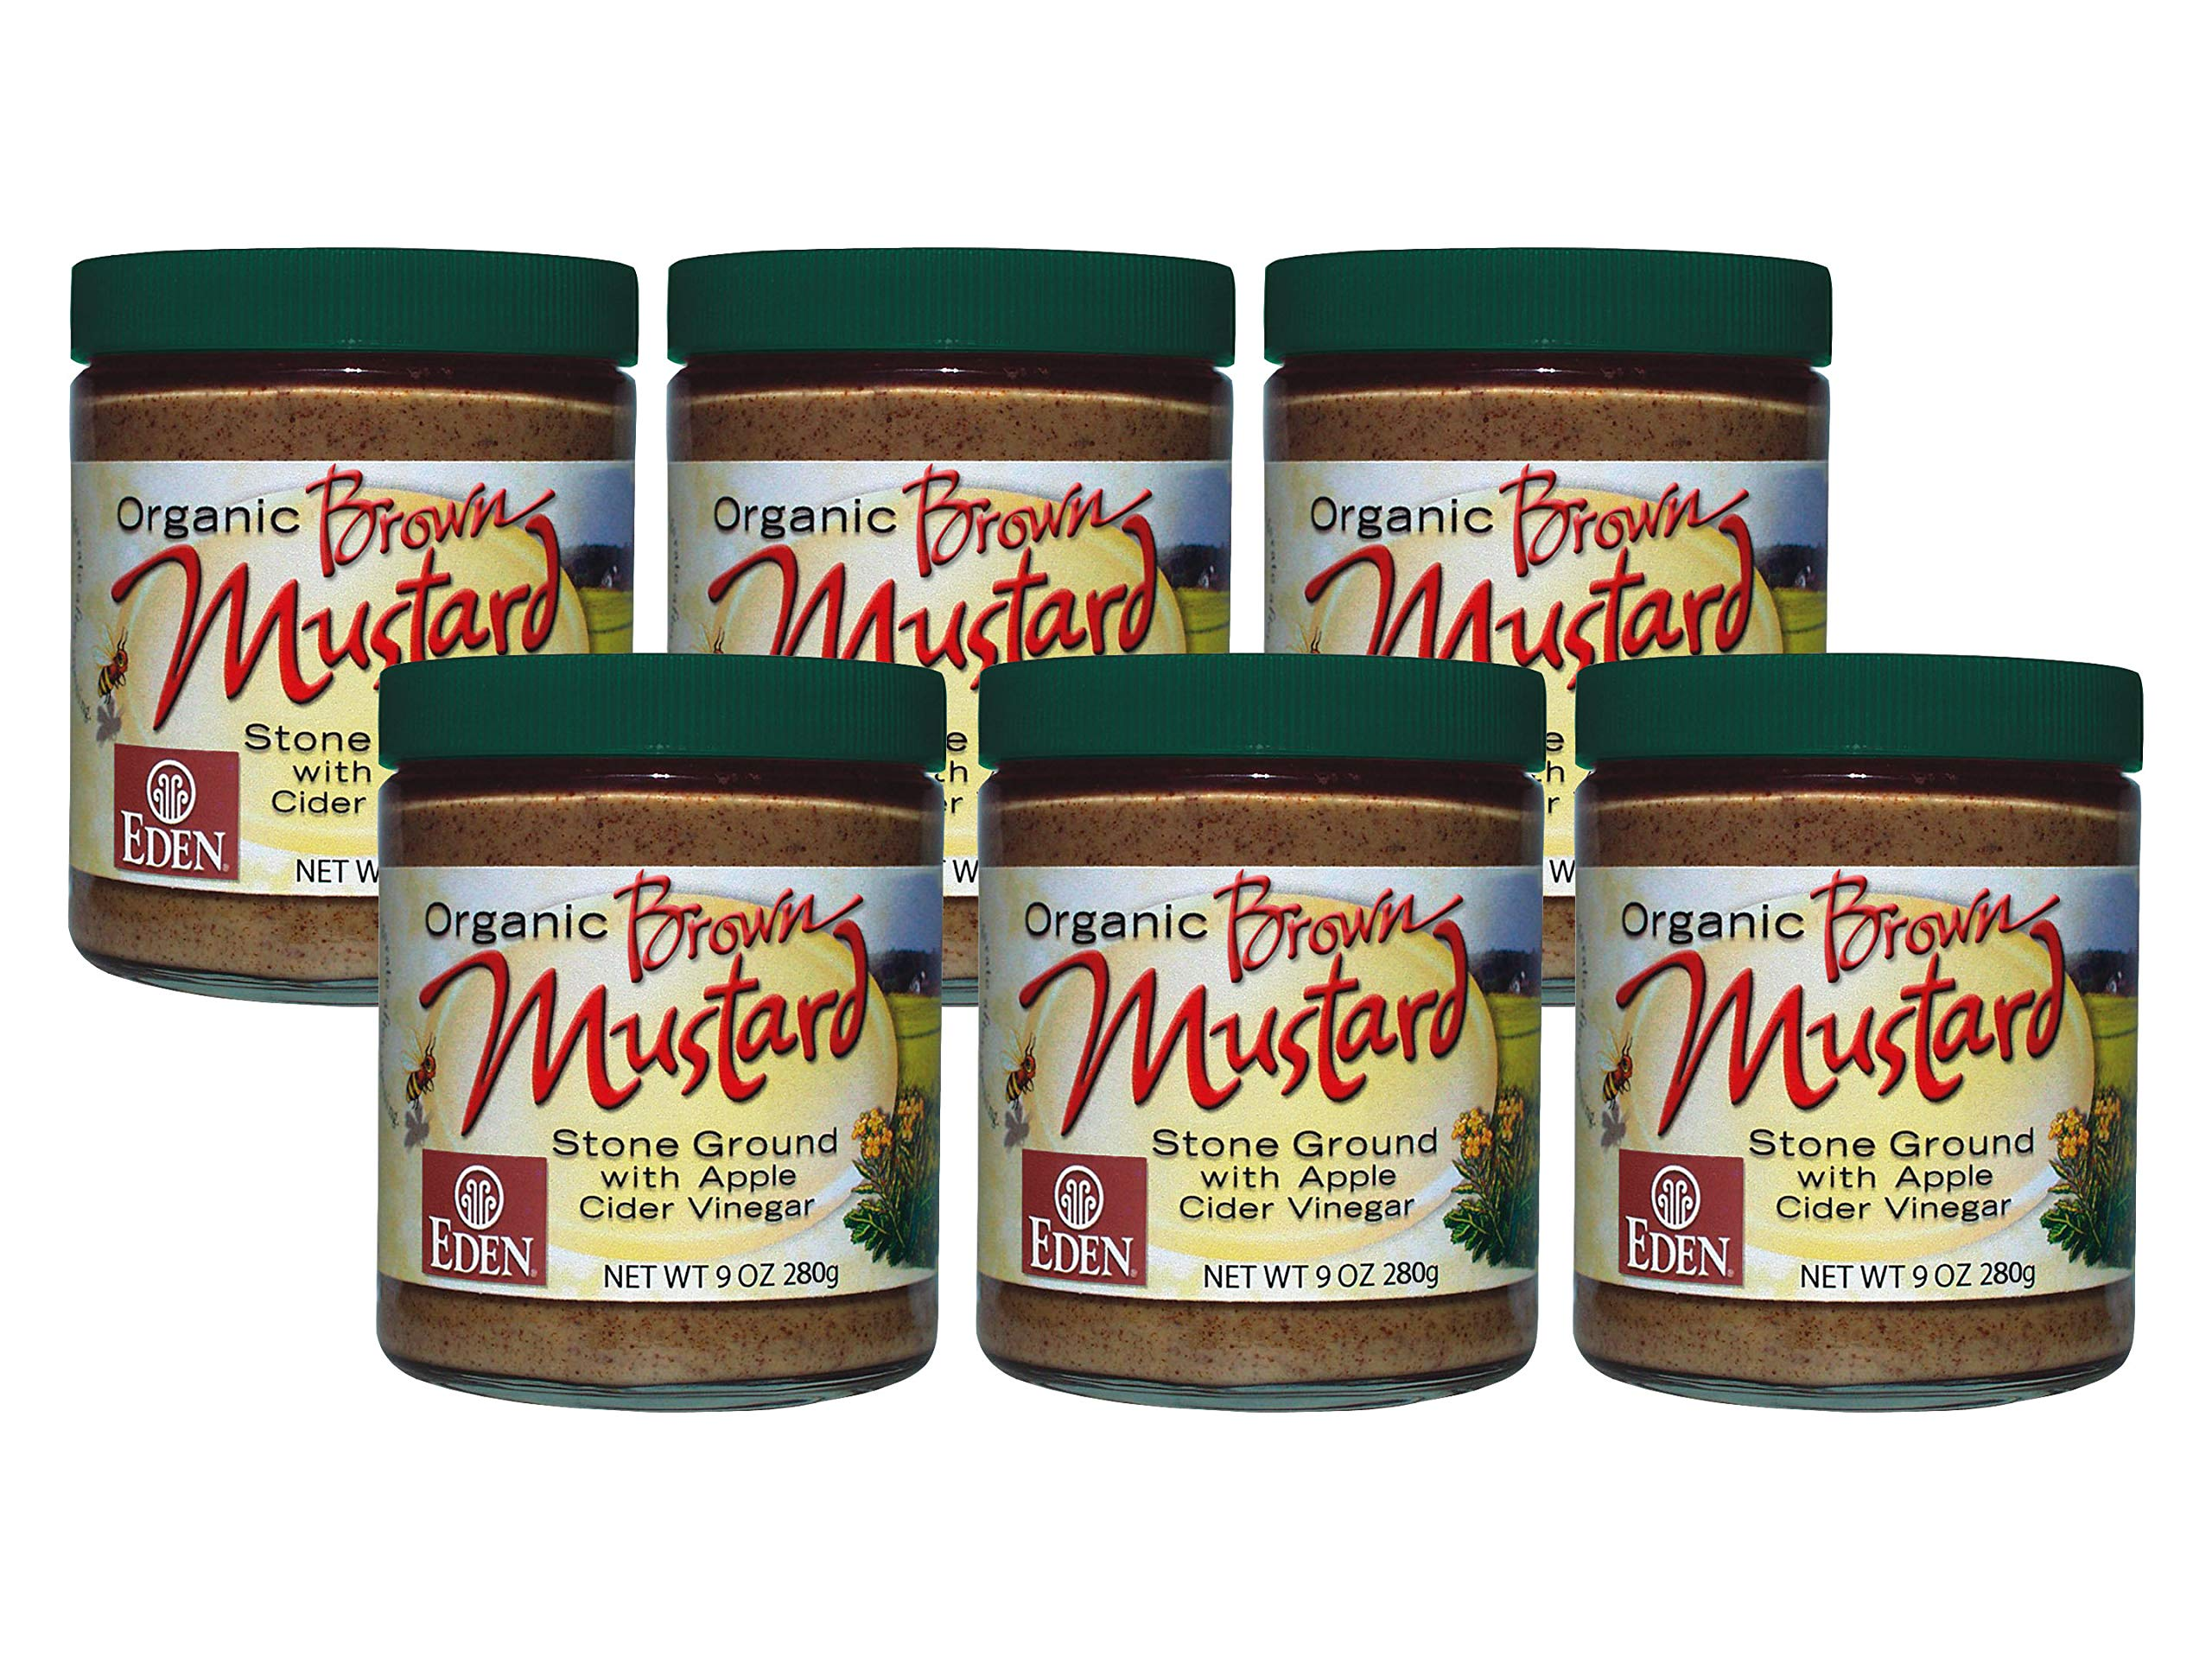 Organic Brown Mustard - 9 Oz. Glass Jar (Pack of 6)